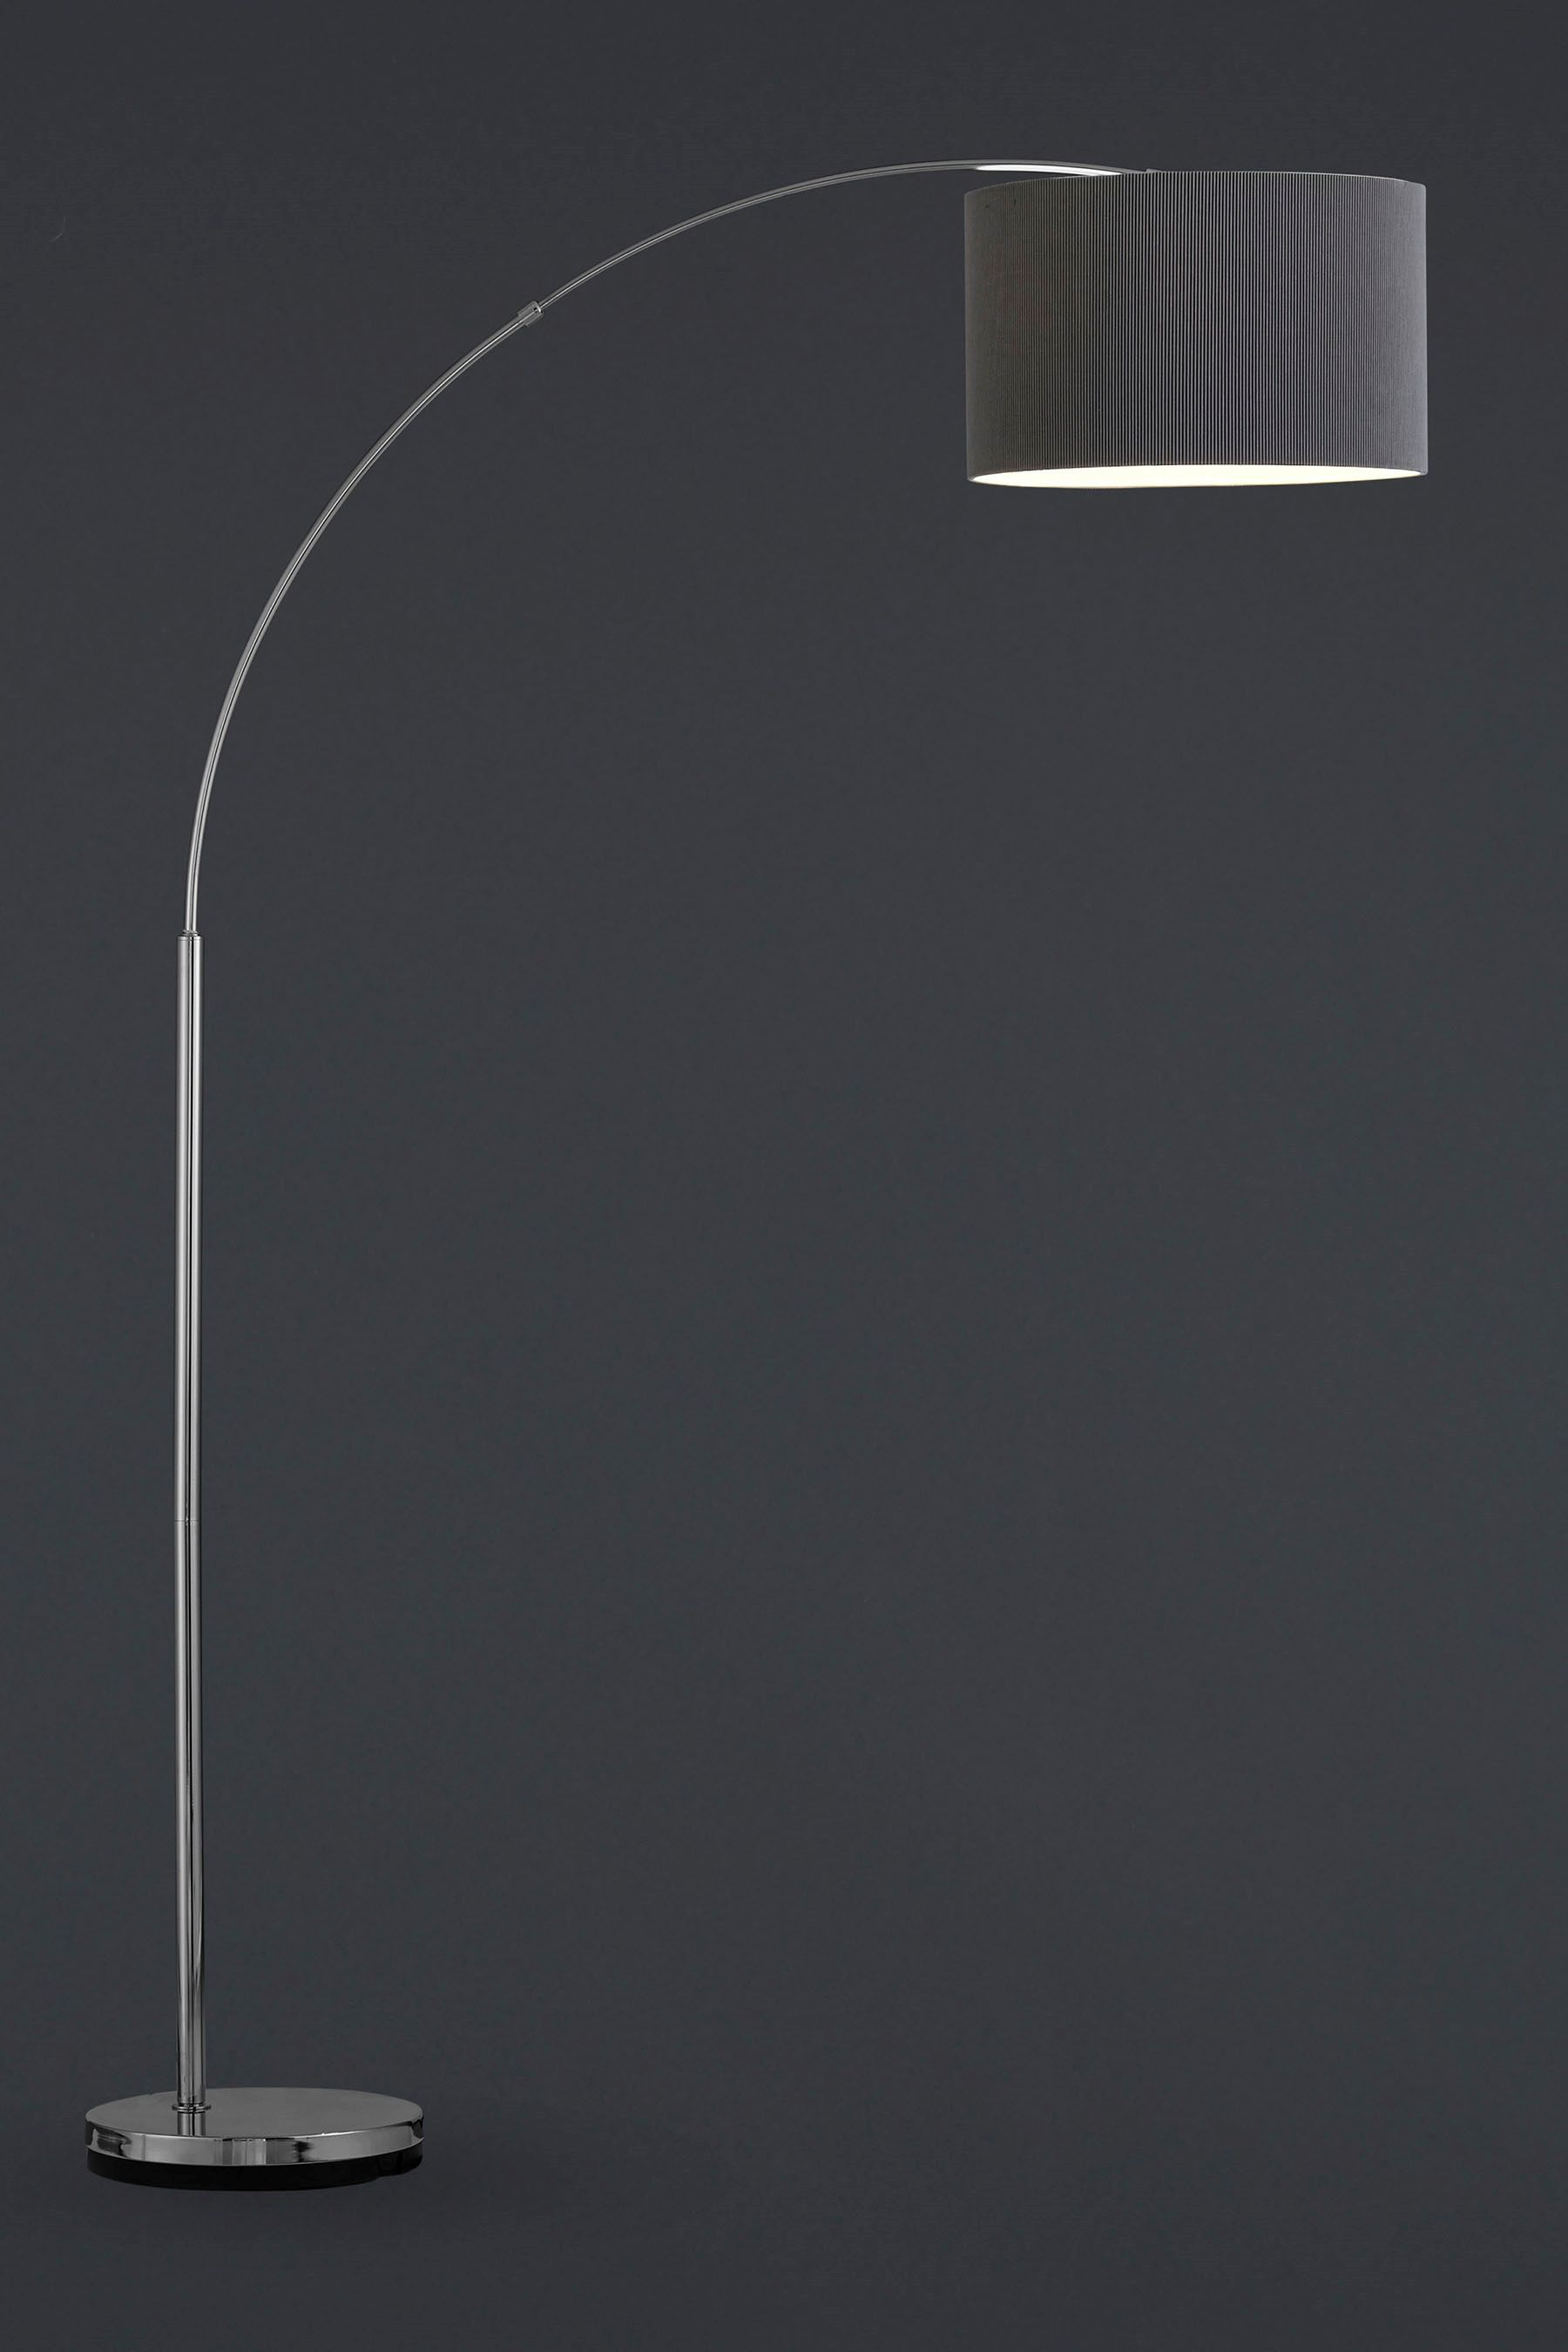 Buy Large Curve Arm Floor Lamp From The Next Uk Online Shop Diy Floor Lamp Lamp Curved Arm